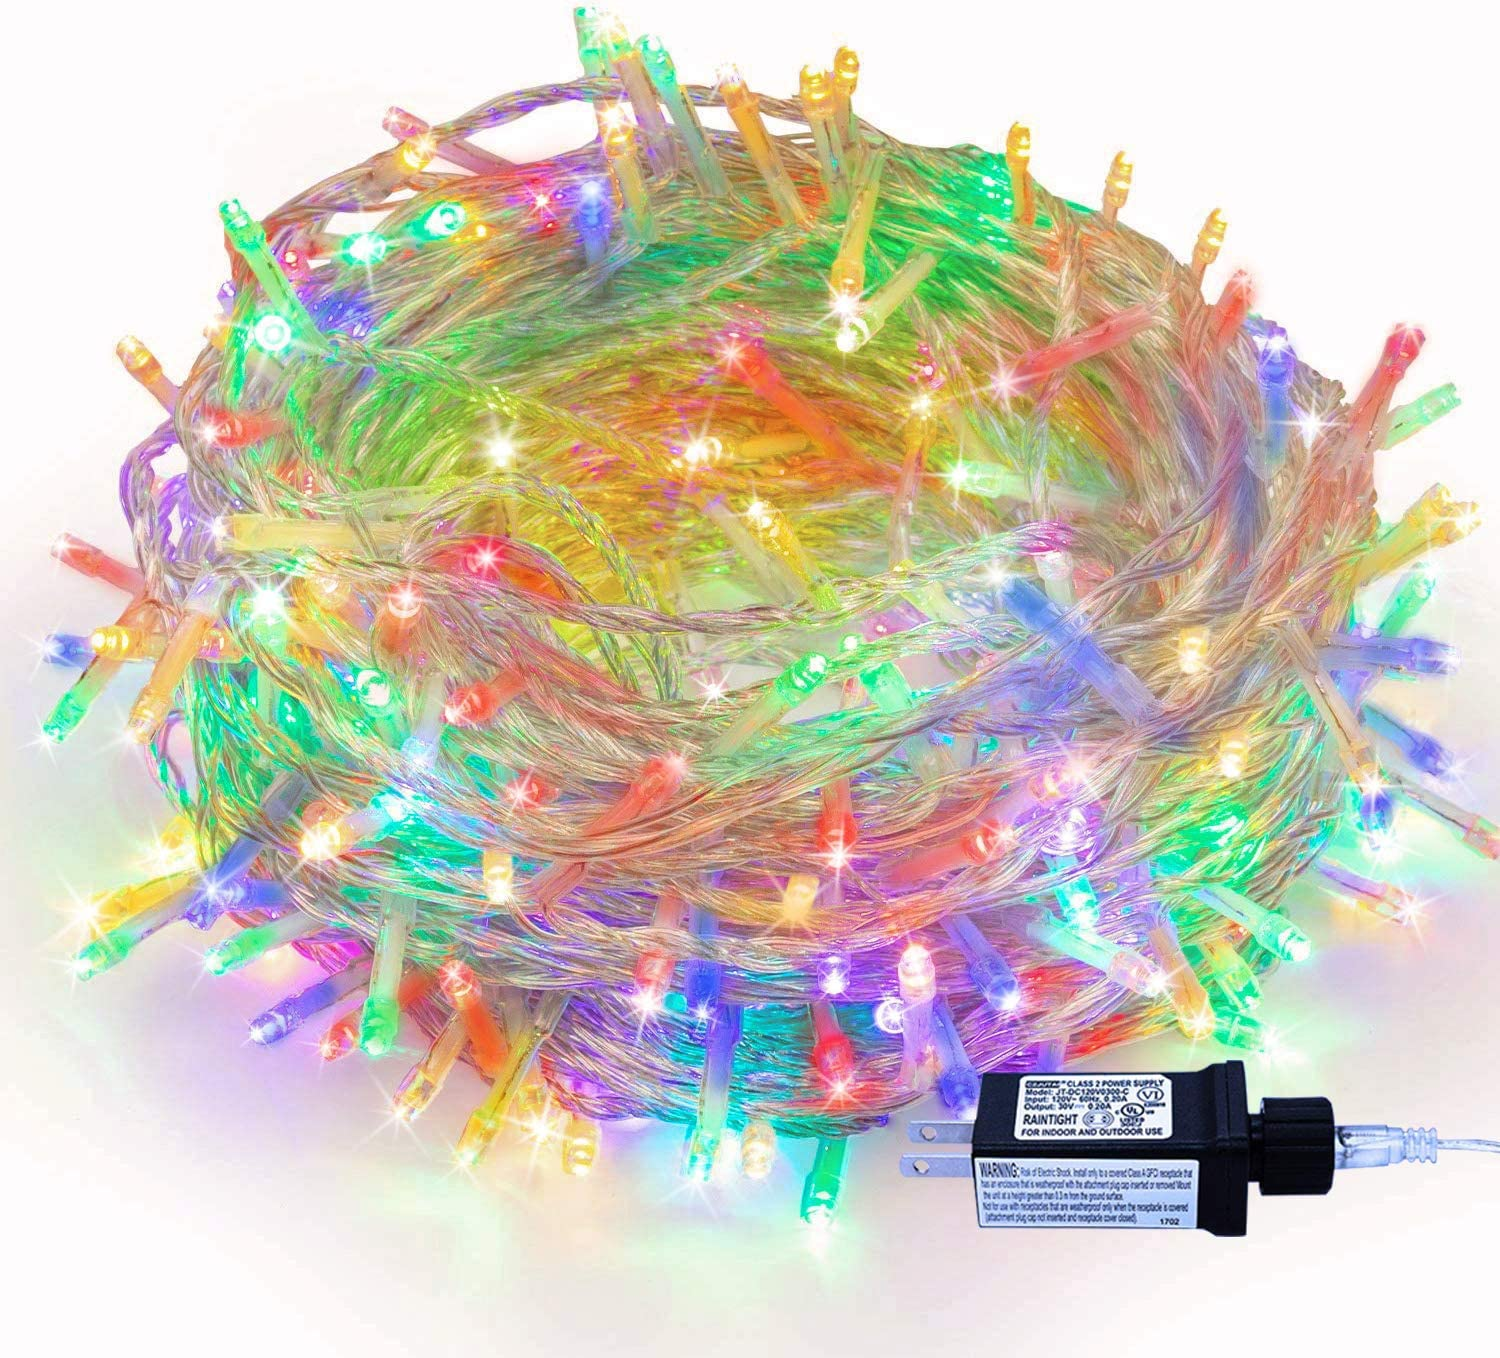 Christmas Tree Lights - 320 LEDs 115ft/35m Memory Function End-to-End 8 Modes Plug in Indoor/Outdoor Waterproof Decorative Fairy Twinkle String Lights for Thanksgiving Day/Wedding/Patio - Colorful